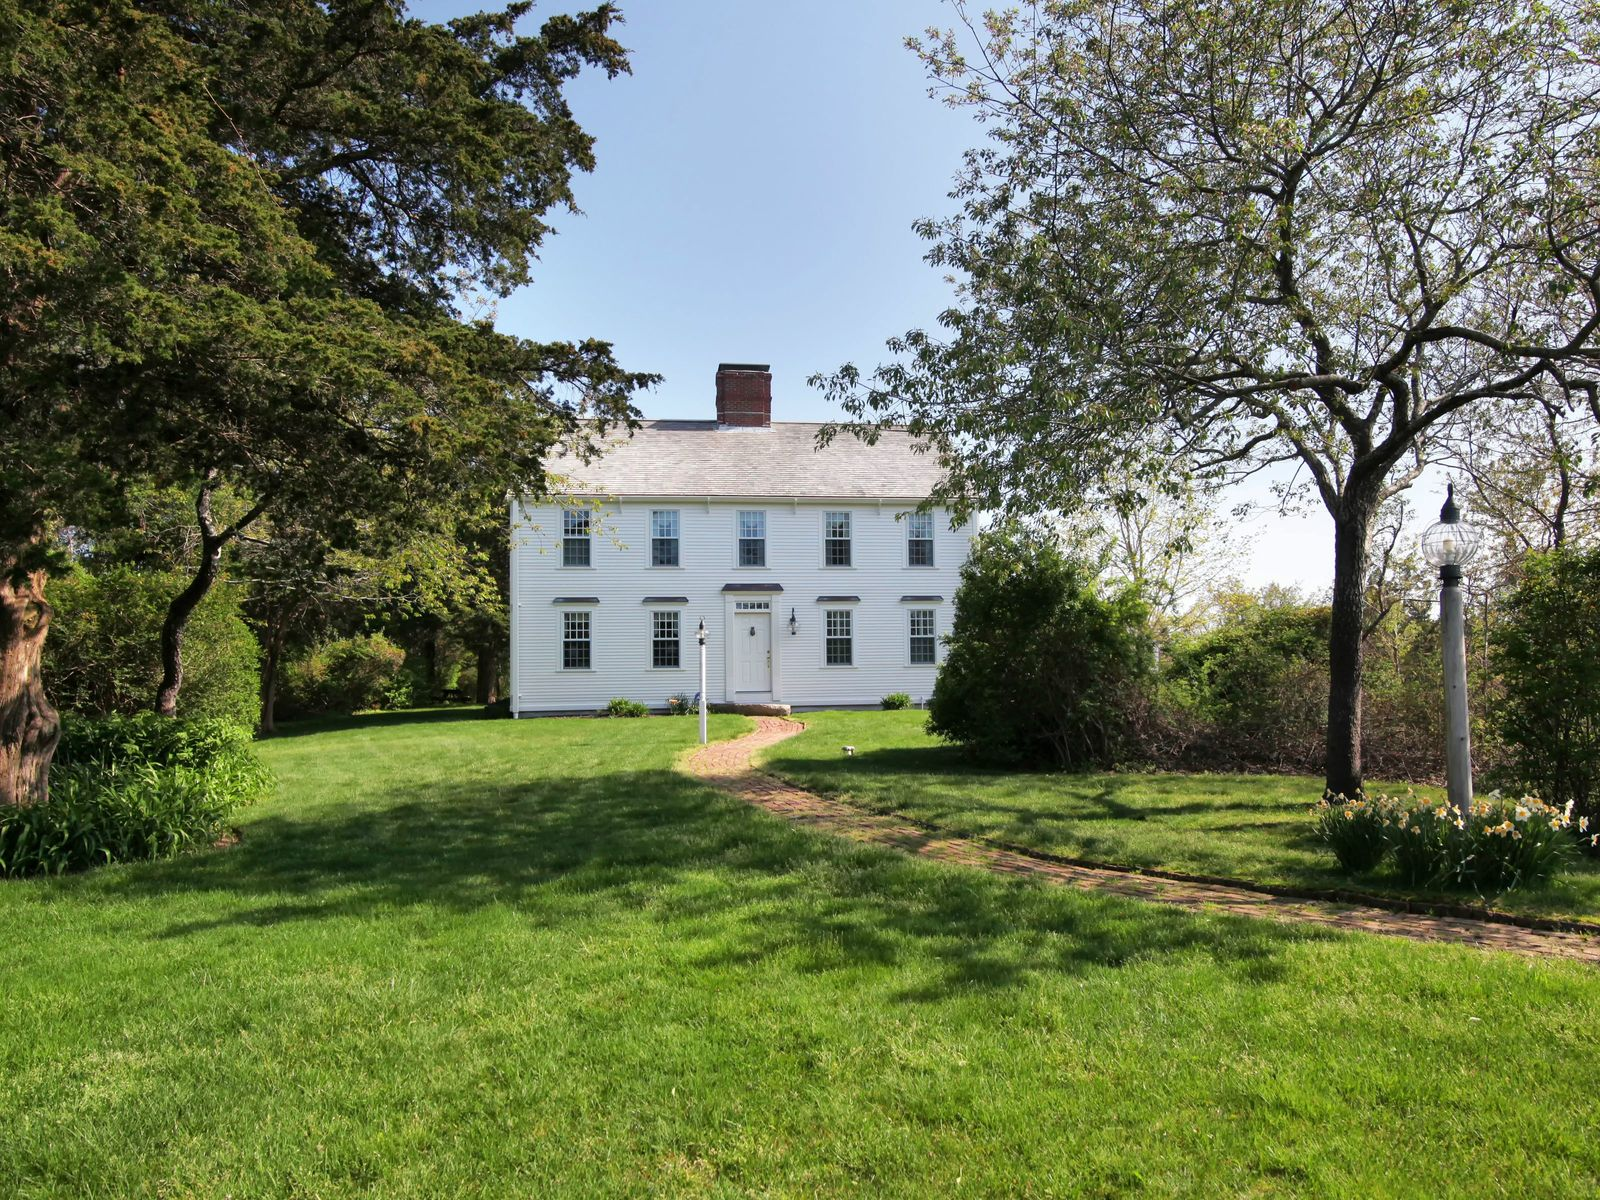 Quality Point Hill Colonial Near Beach, West Barnstable MA Single Family Home - Cape Cod Real Estate